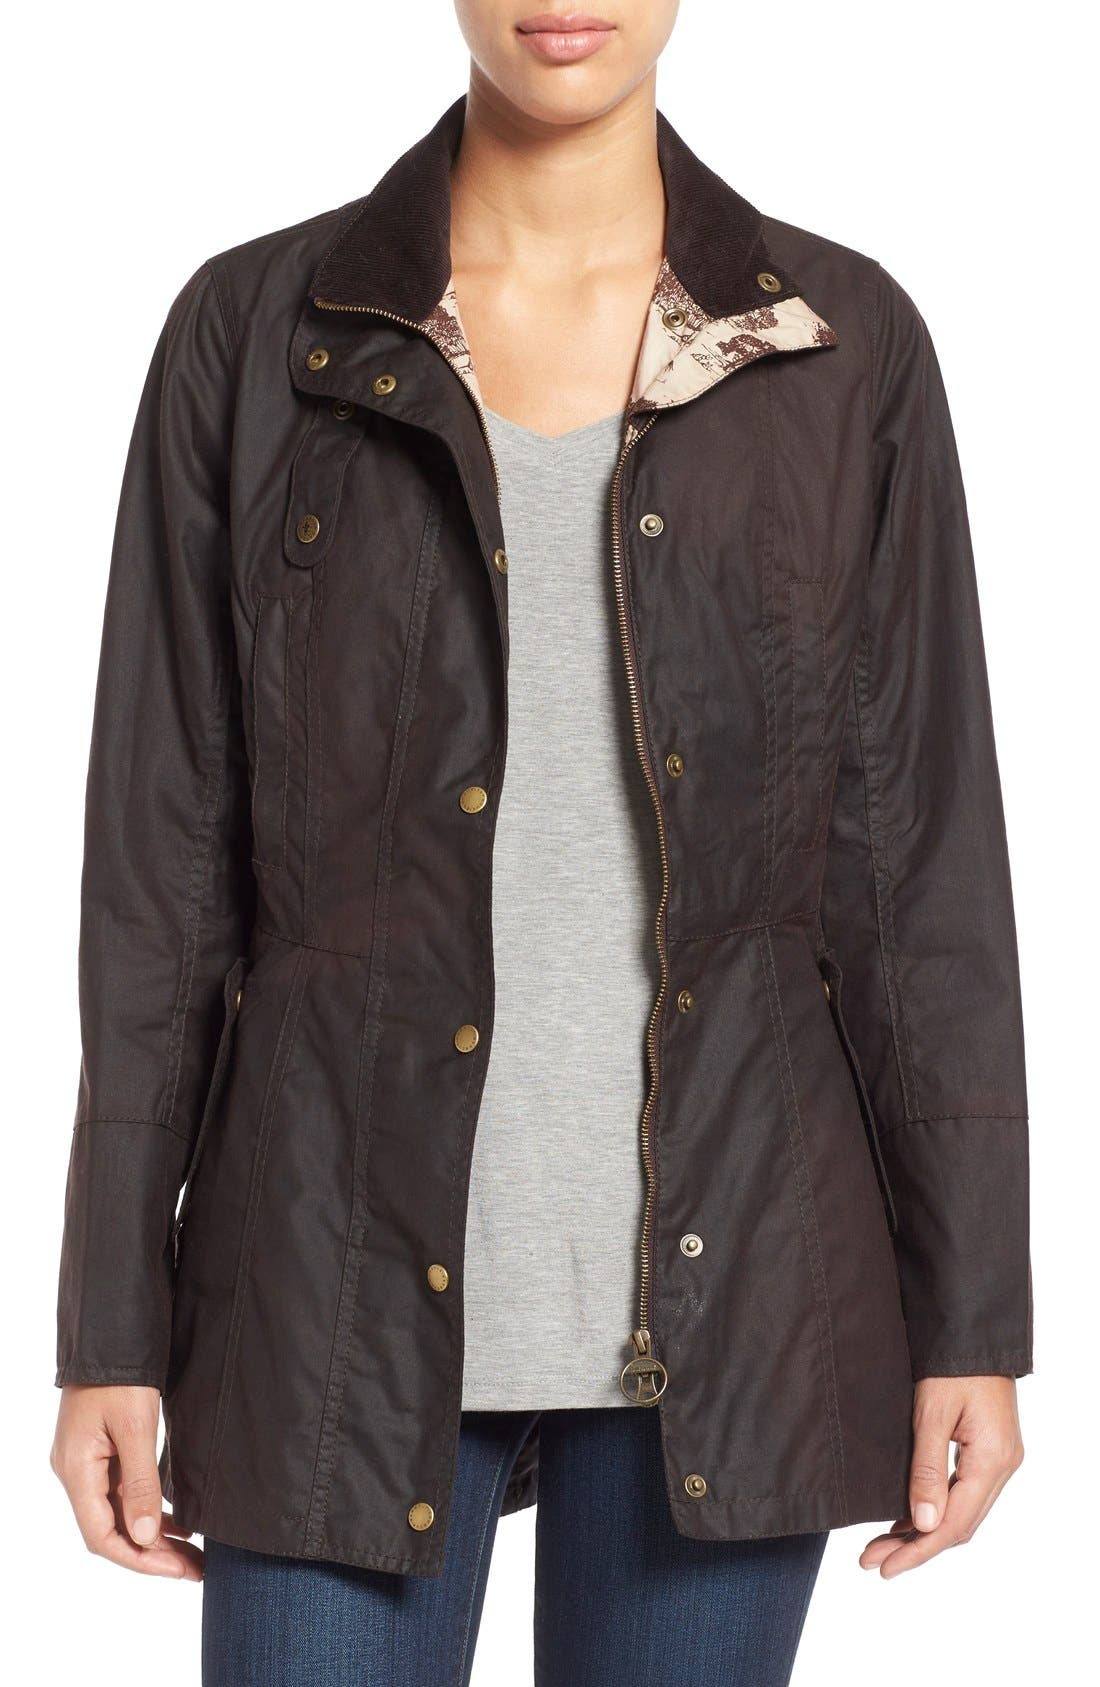 Main Image - Barbour 'Holsteiner' Skirted Waxed Cotton Jacket